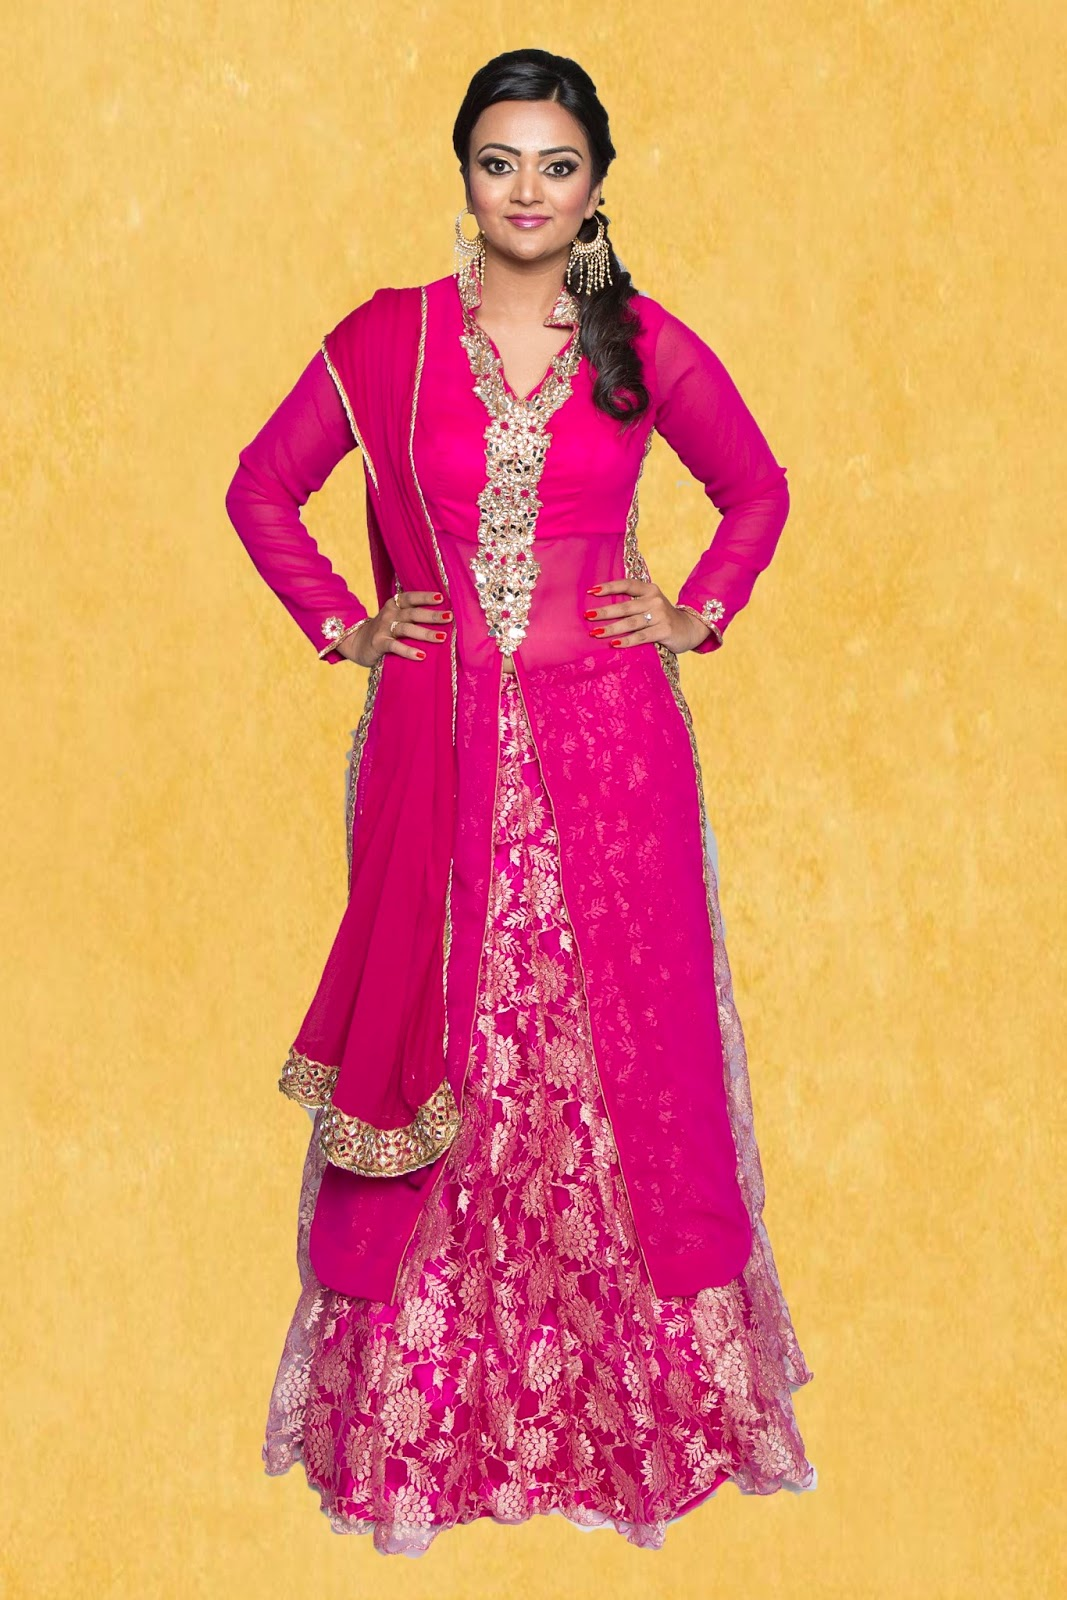 desginer lehenga, hot pink outfit, indian designer wear online, wedding lehengas online, seattle indian outfits store